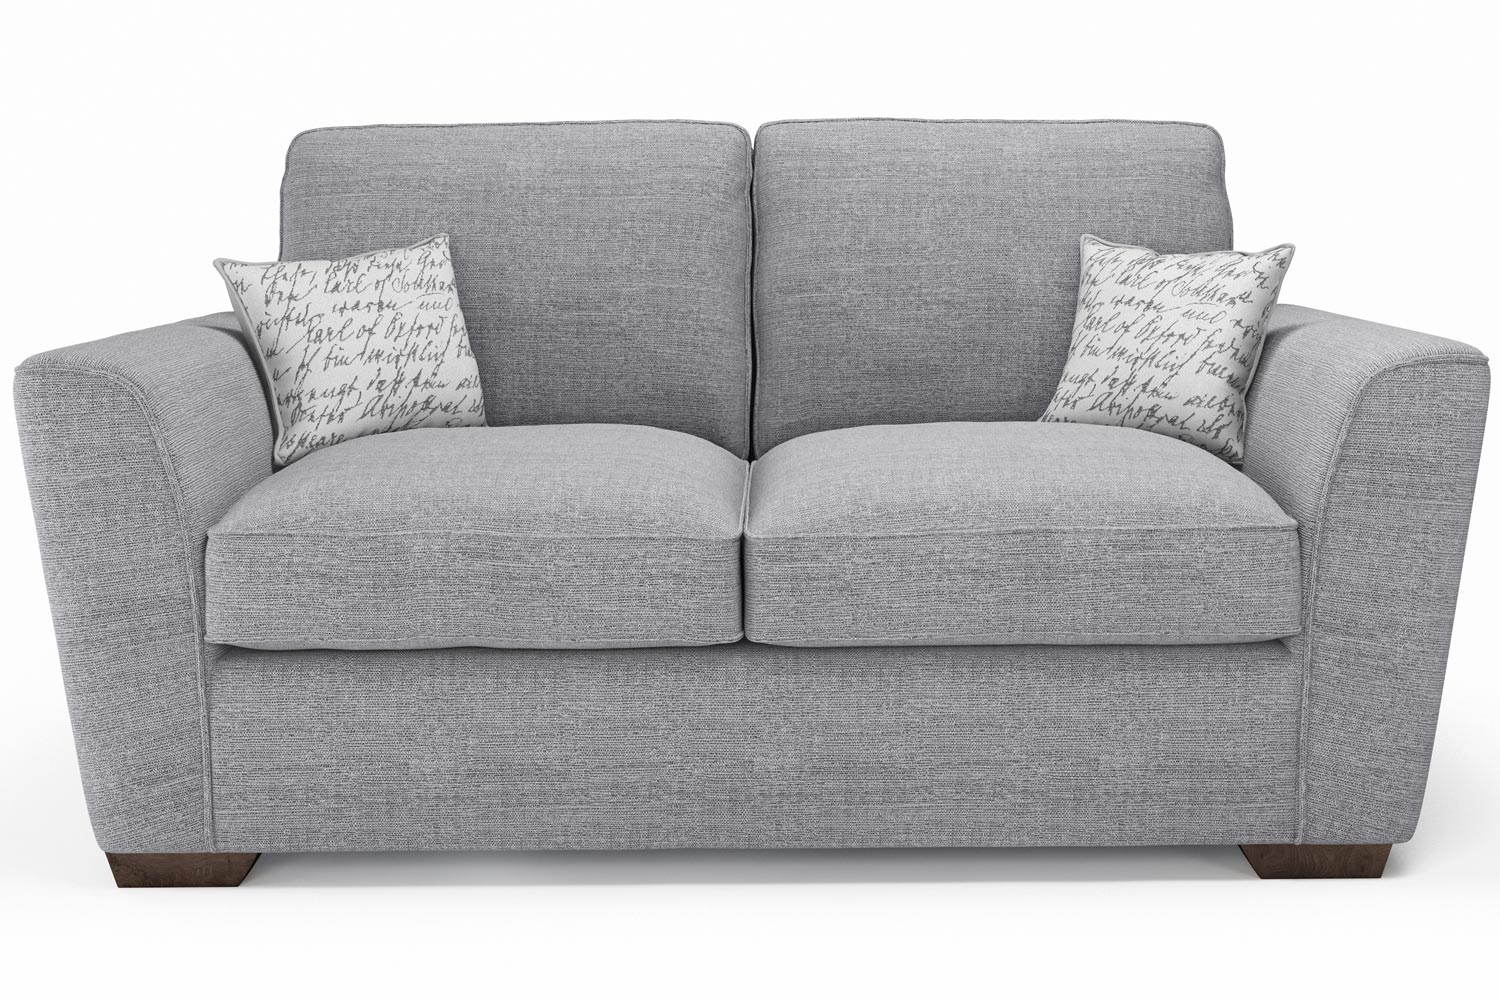 Buying guide for the 2 seater sofa